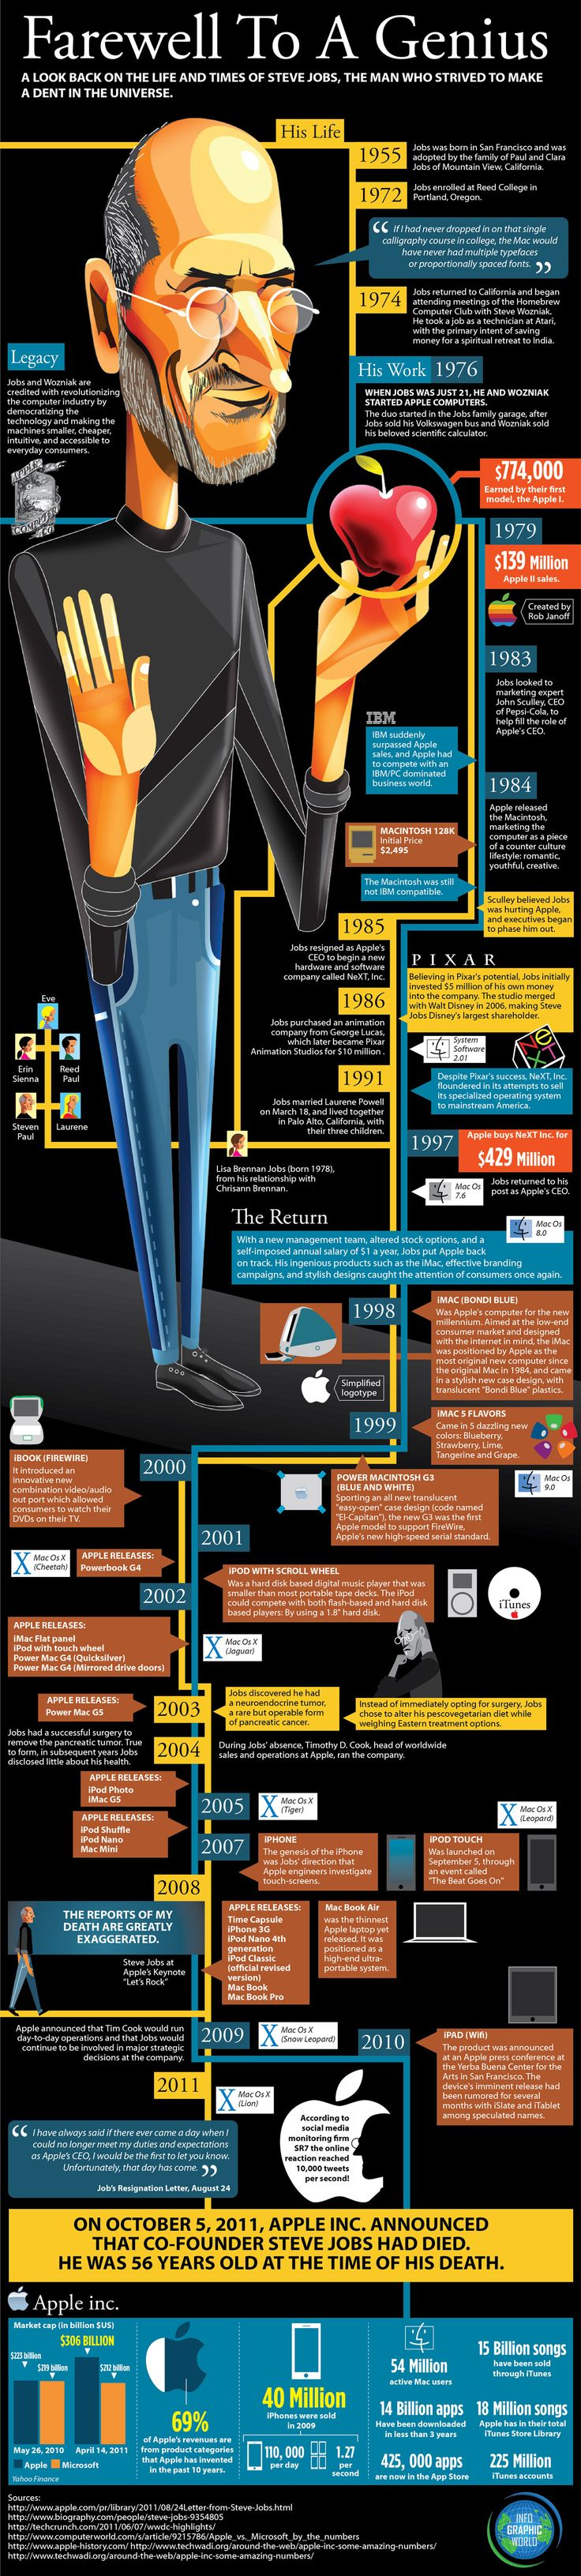 Farewell To A Genius - The Life and Times of Steve Jobs [Infographic]